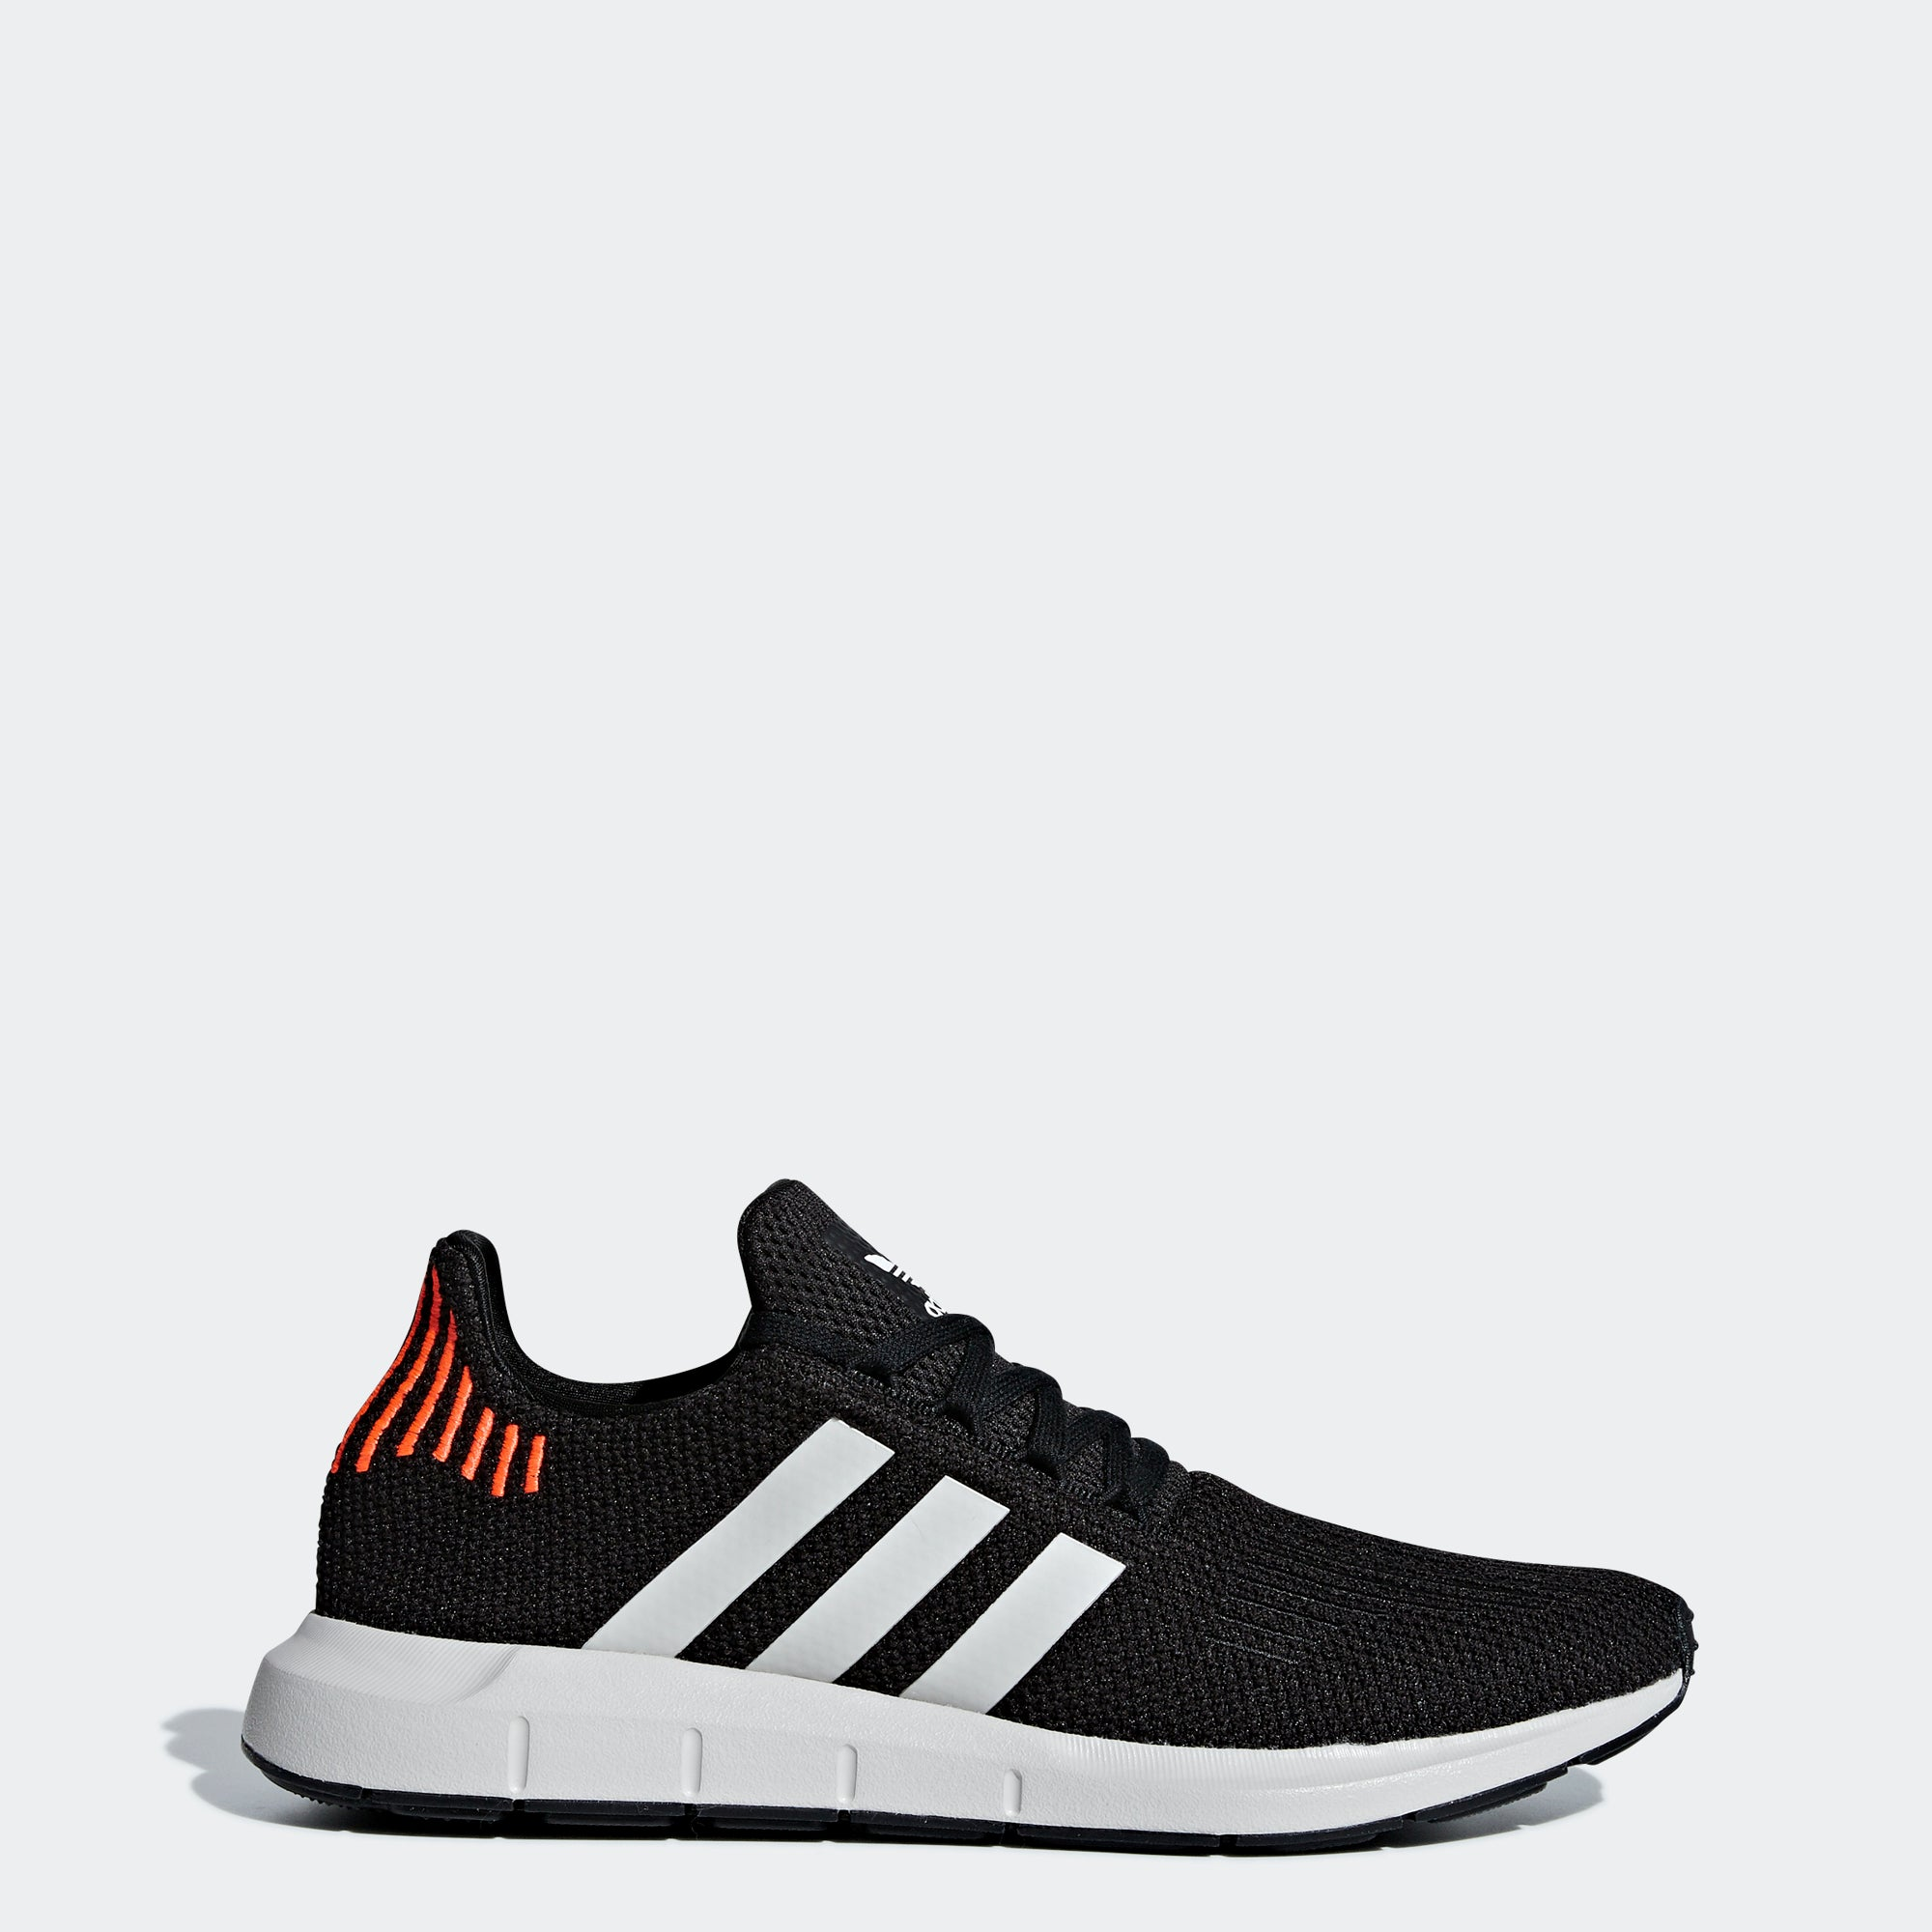 separation shoes 5ab1f 9aa22 Men s adidas Originals Swift Run Shoes Black Orange